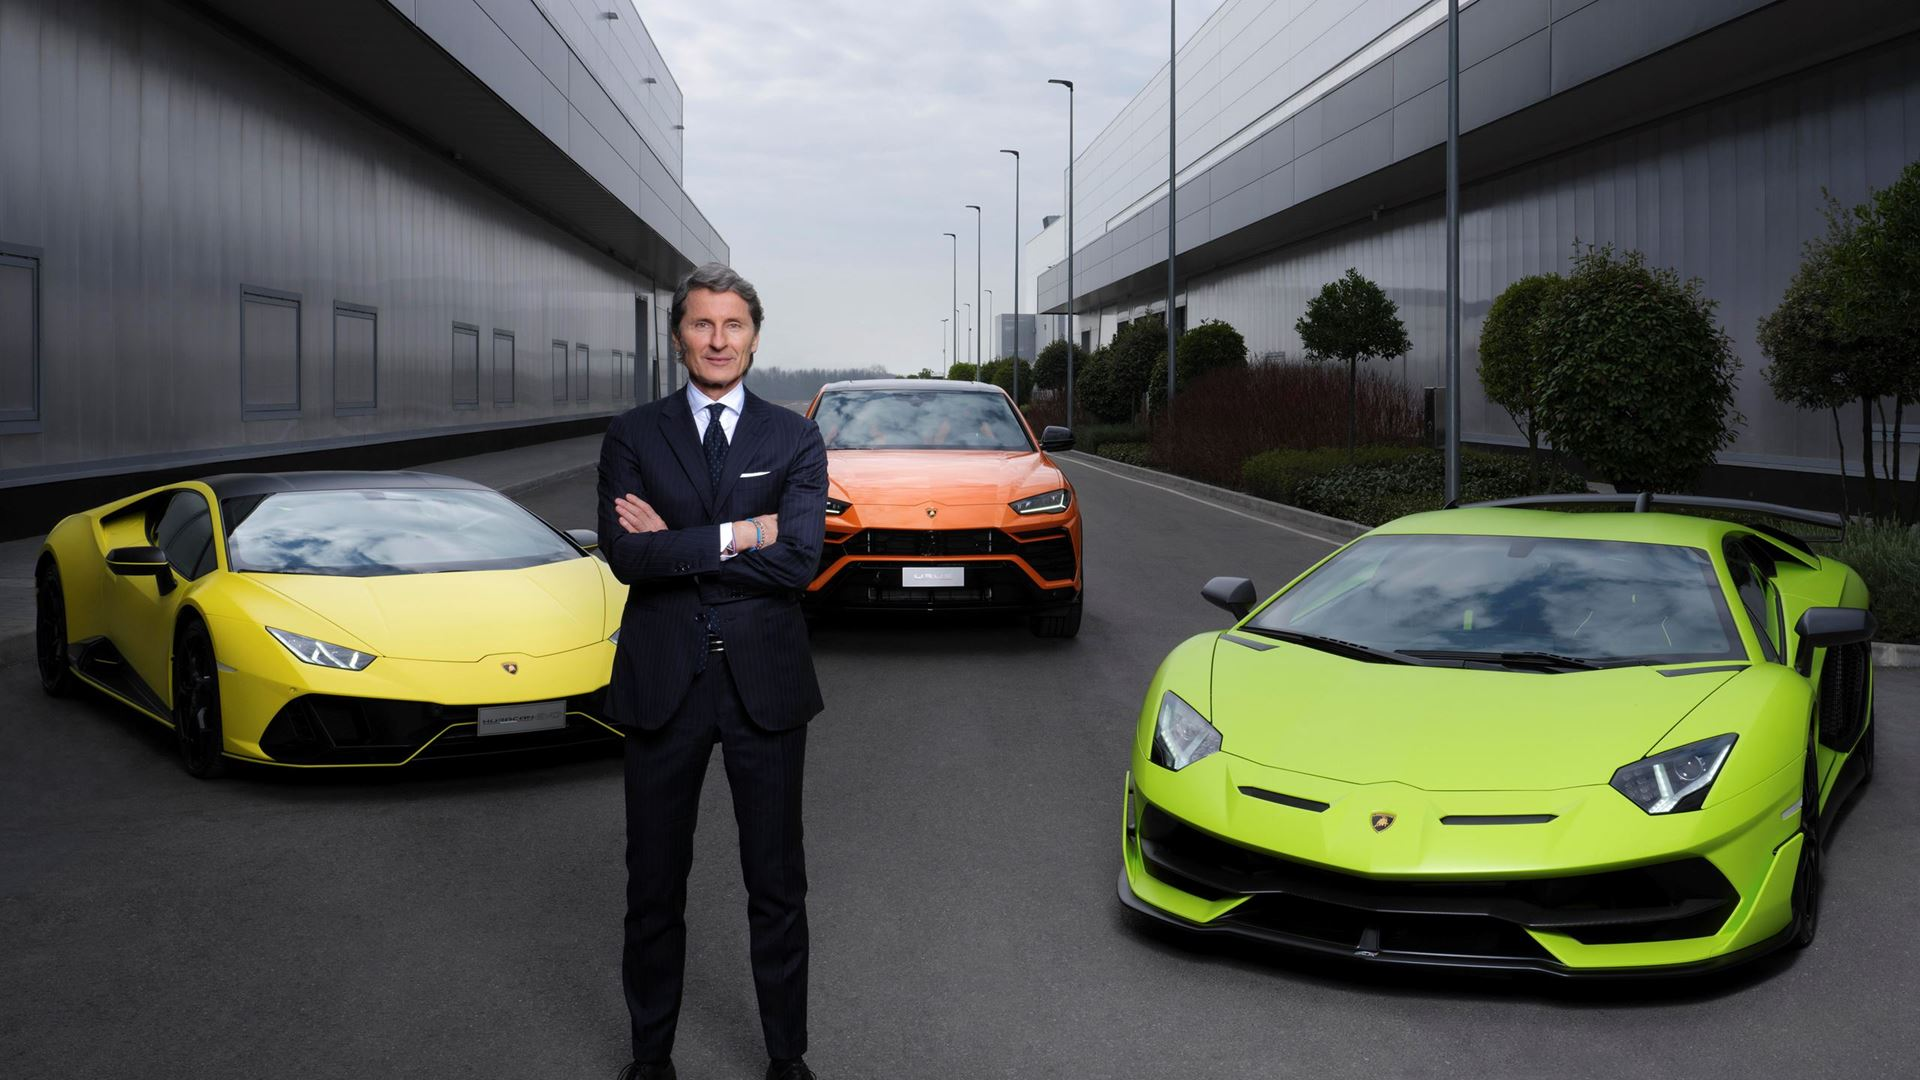 Automobili Lamborghini: Strong profitability and second-best year ever for turnover and sales - Image 6